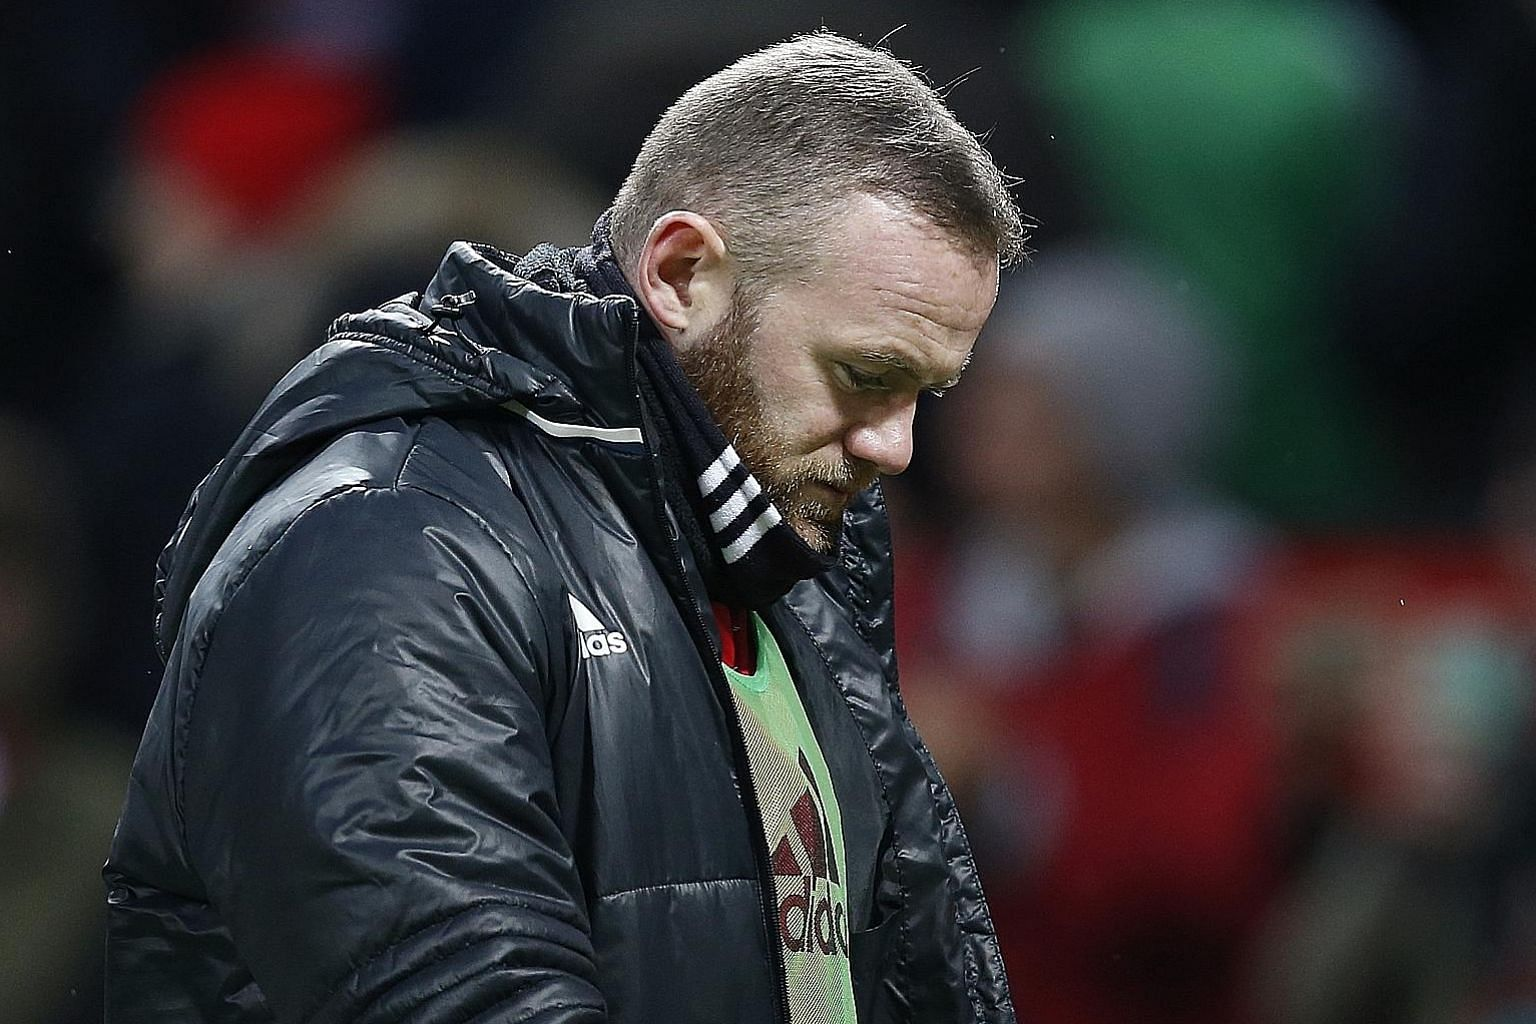 Manchester United captain Wayne Rooney's uncertain future continues amid speculation over a transfer to the Chinese Super League. The British media has also reported that he could earn up to US$1 million a week, making him the world's best-paid playe